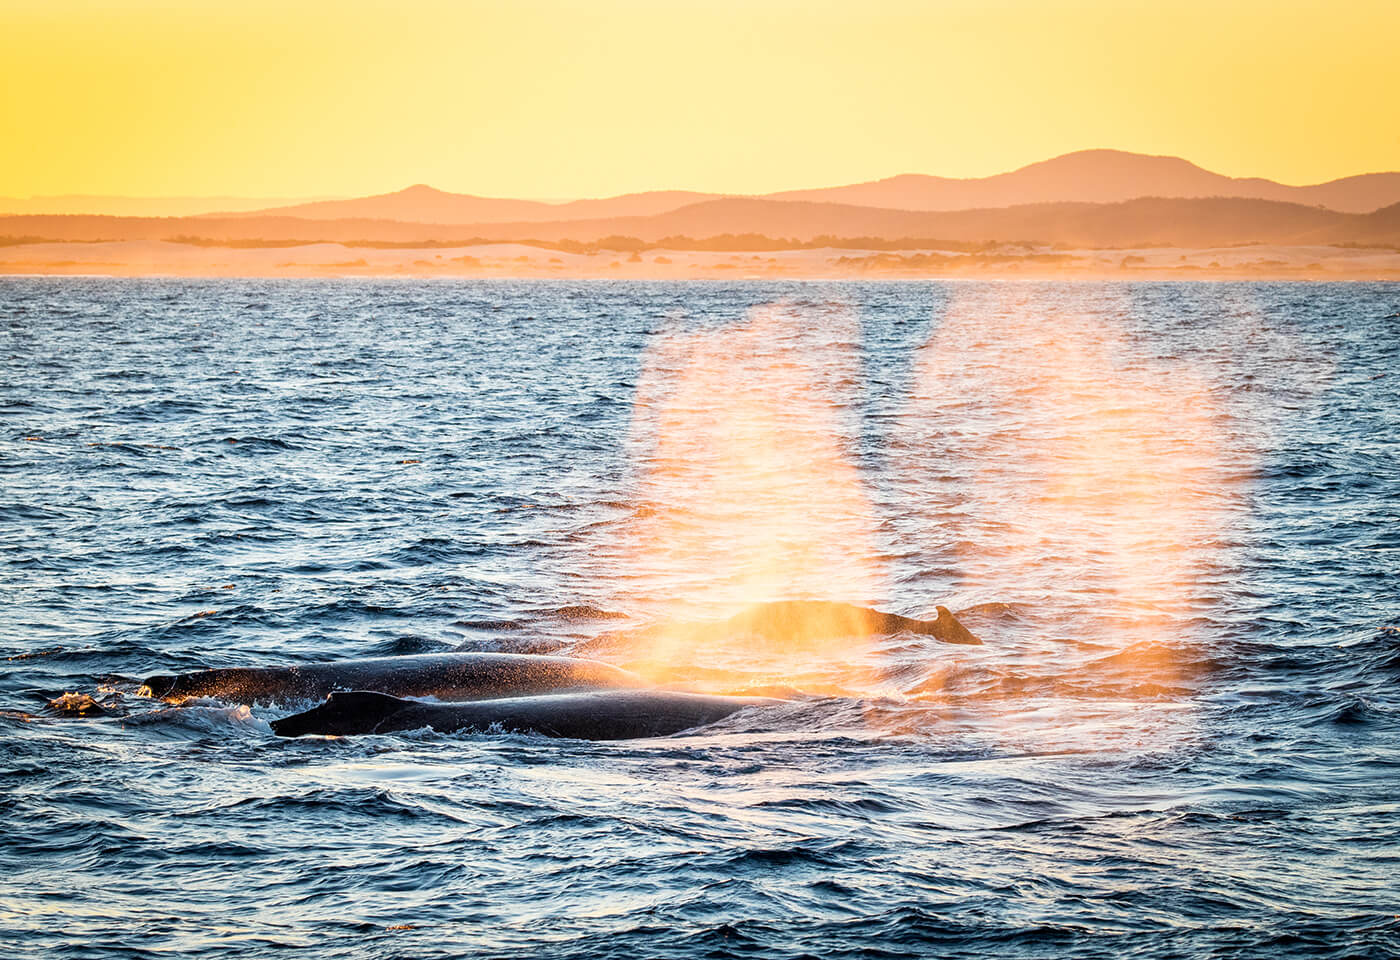 Image of whales